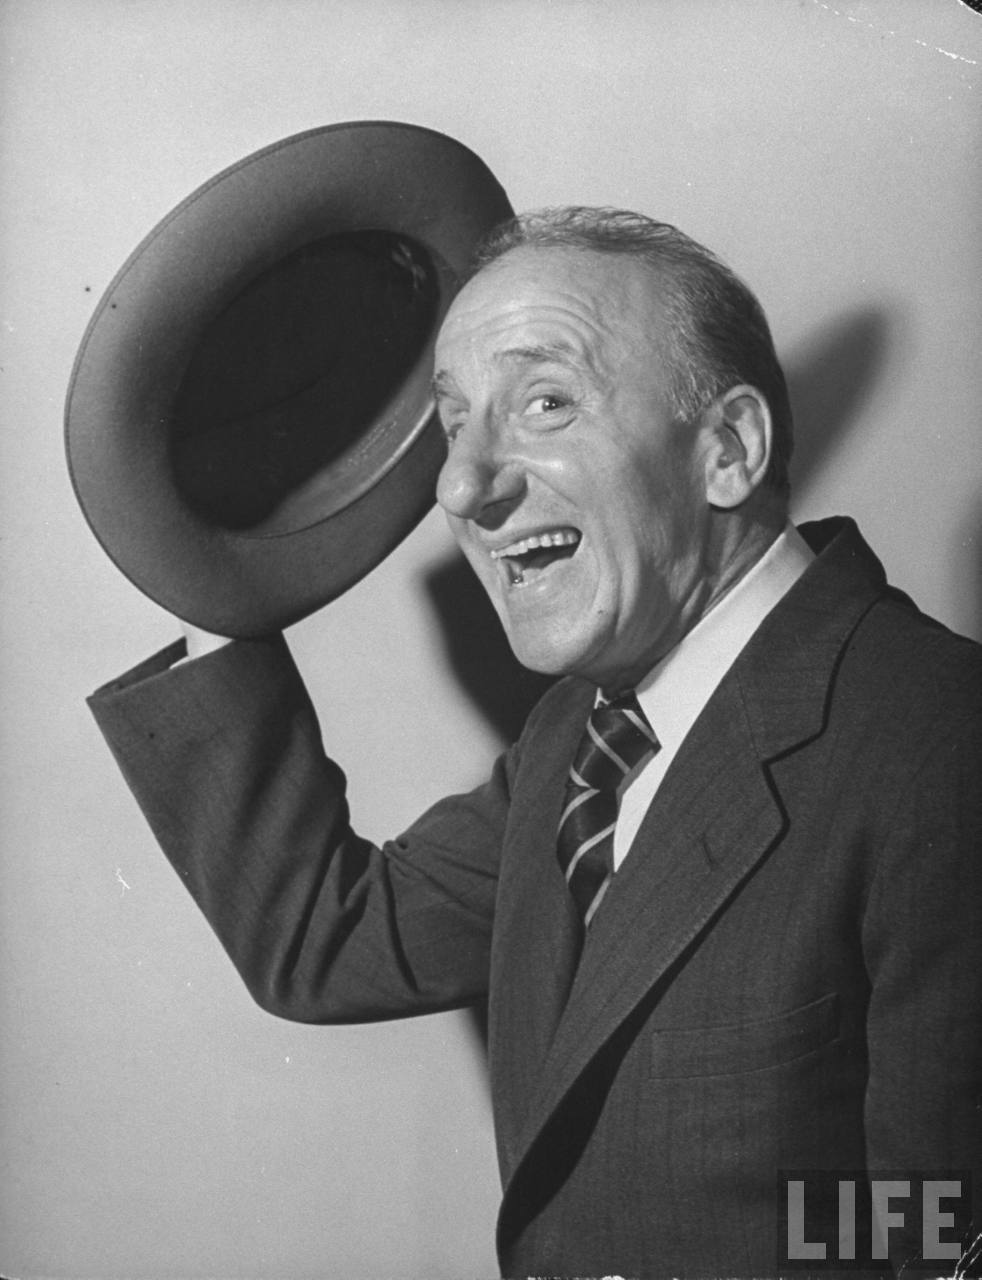 1961 Jimmy Durante